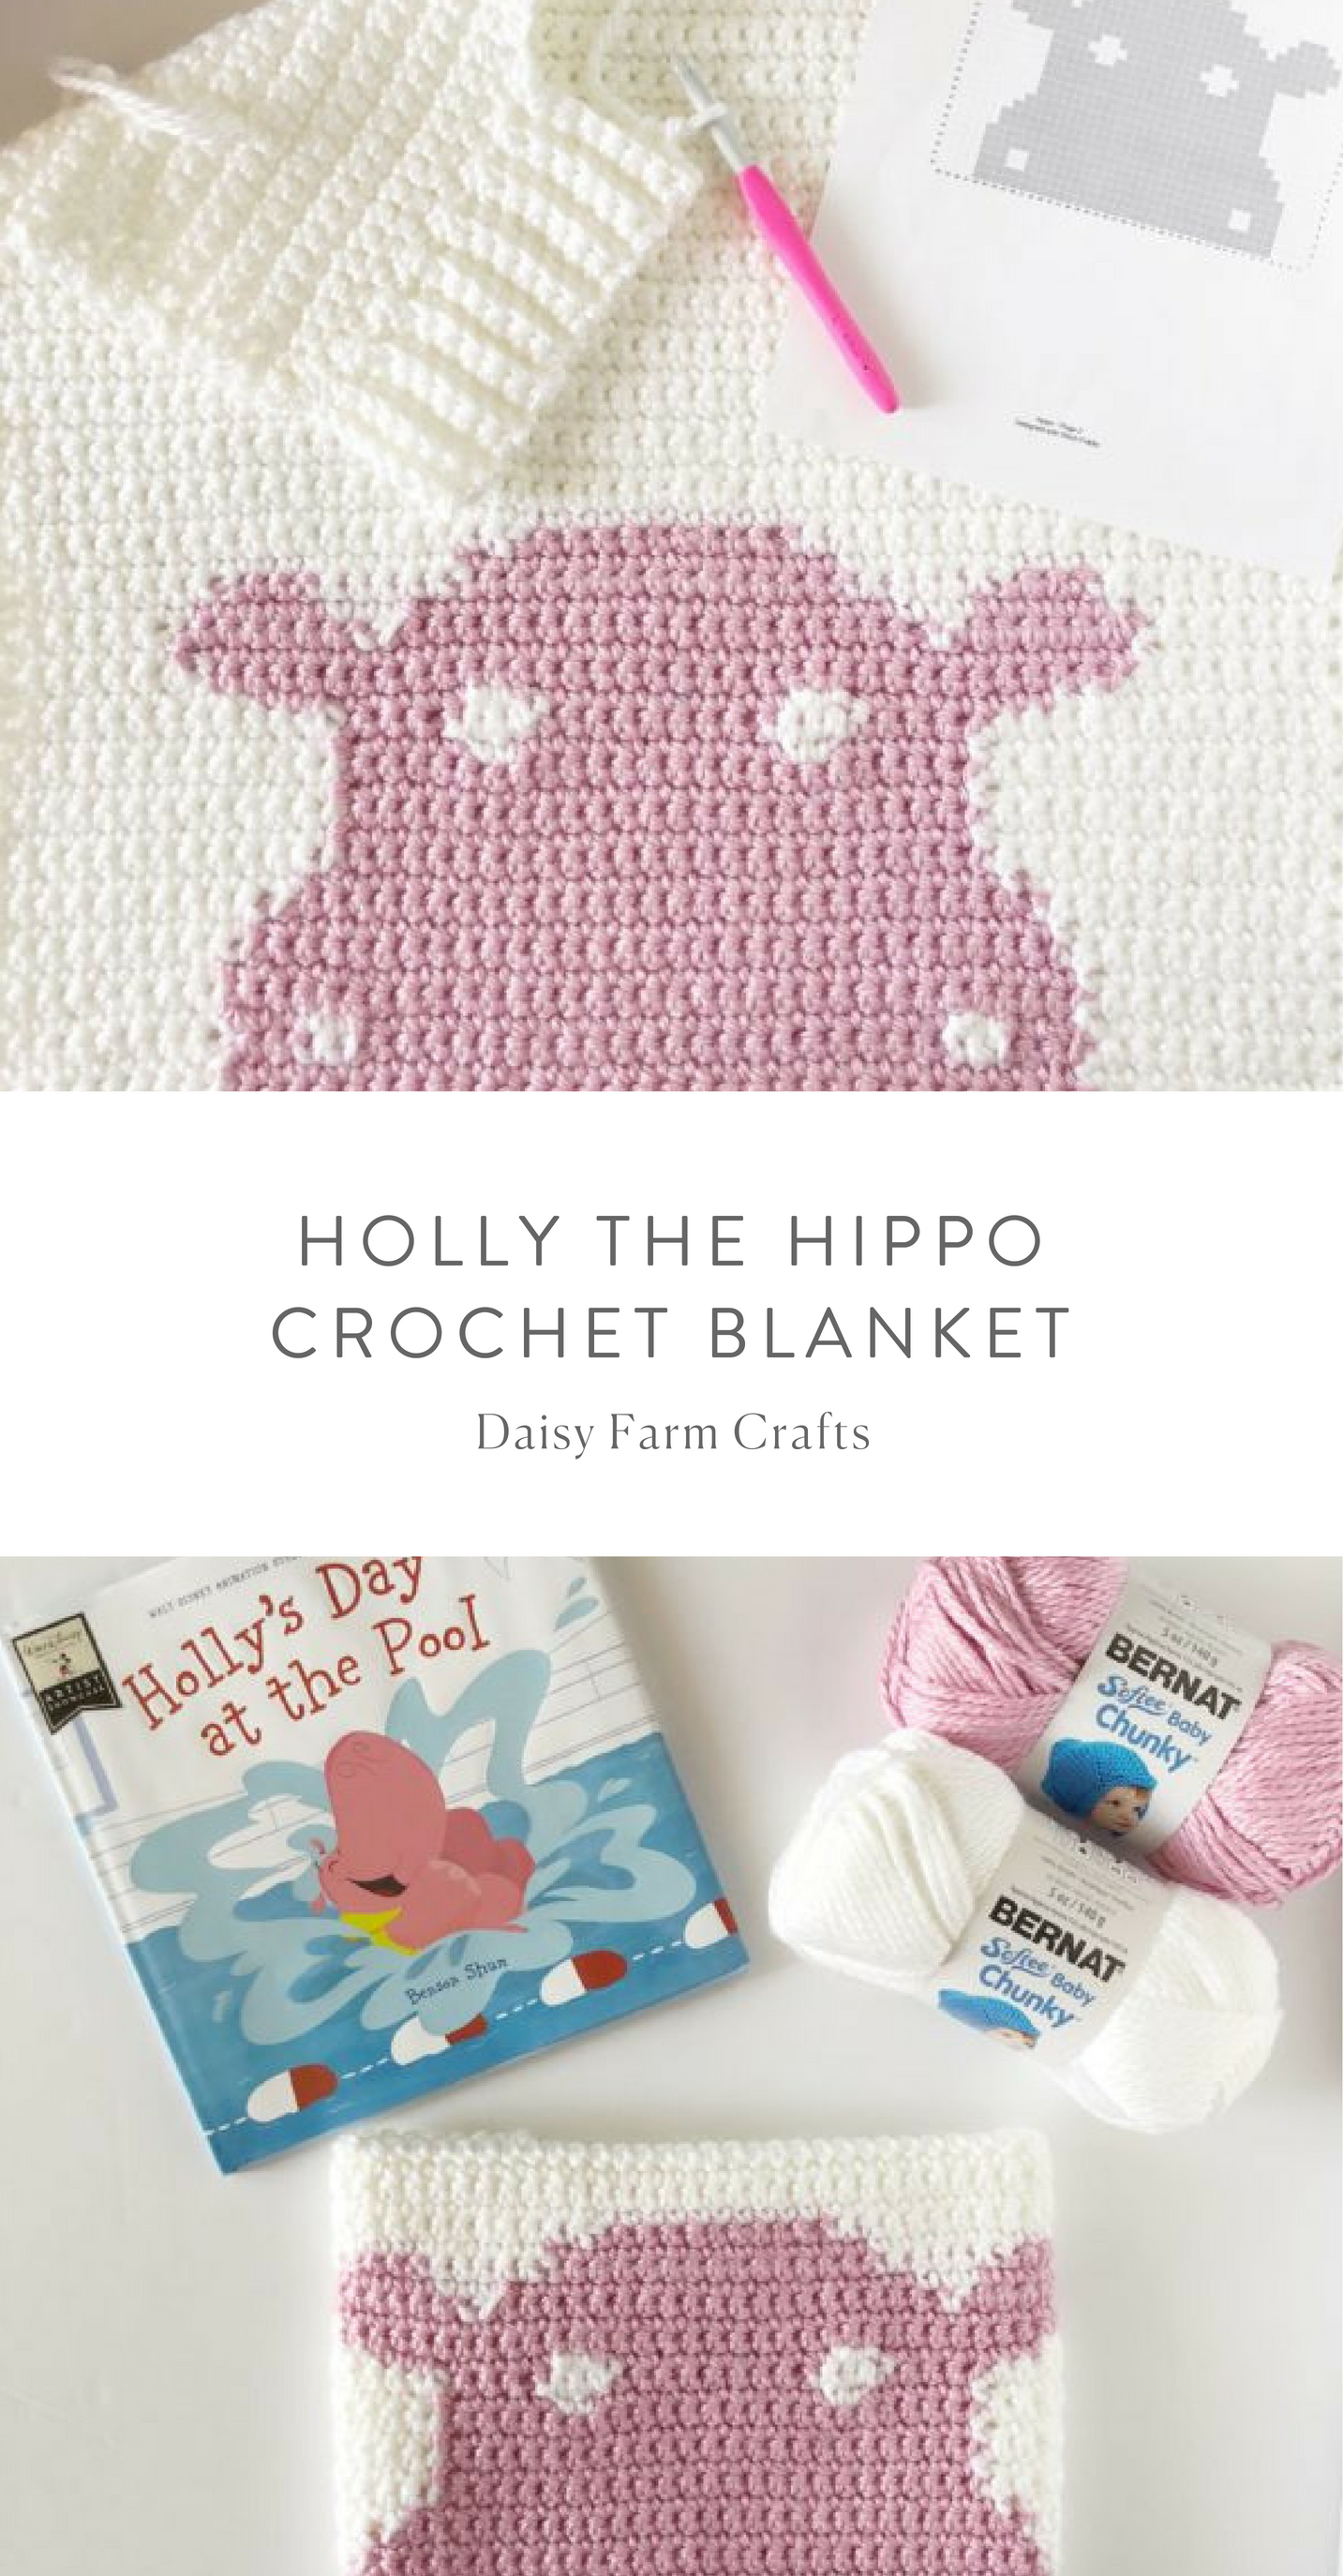 Free Pattern - Holly the Hippo Crochet Blanket #crochet | crafts ...